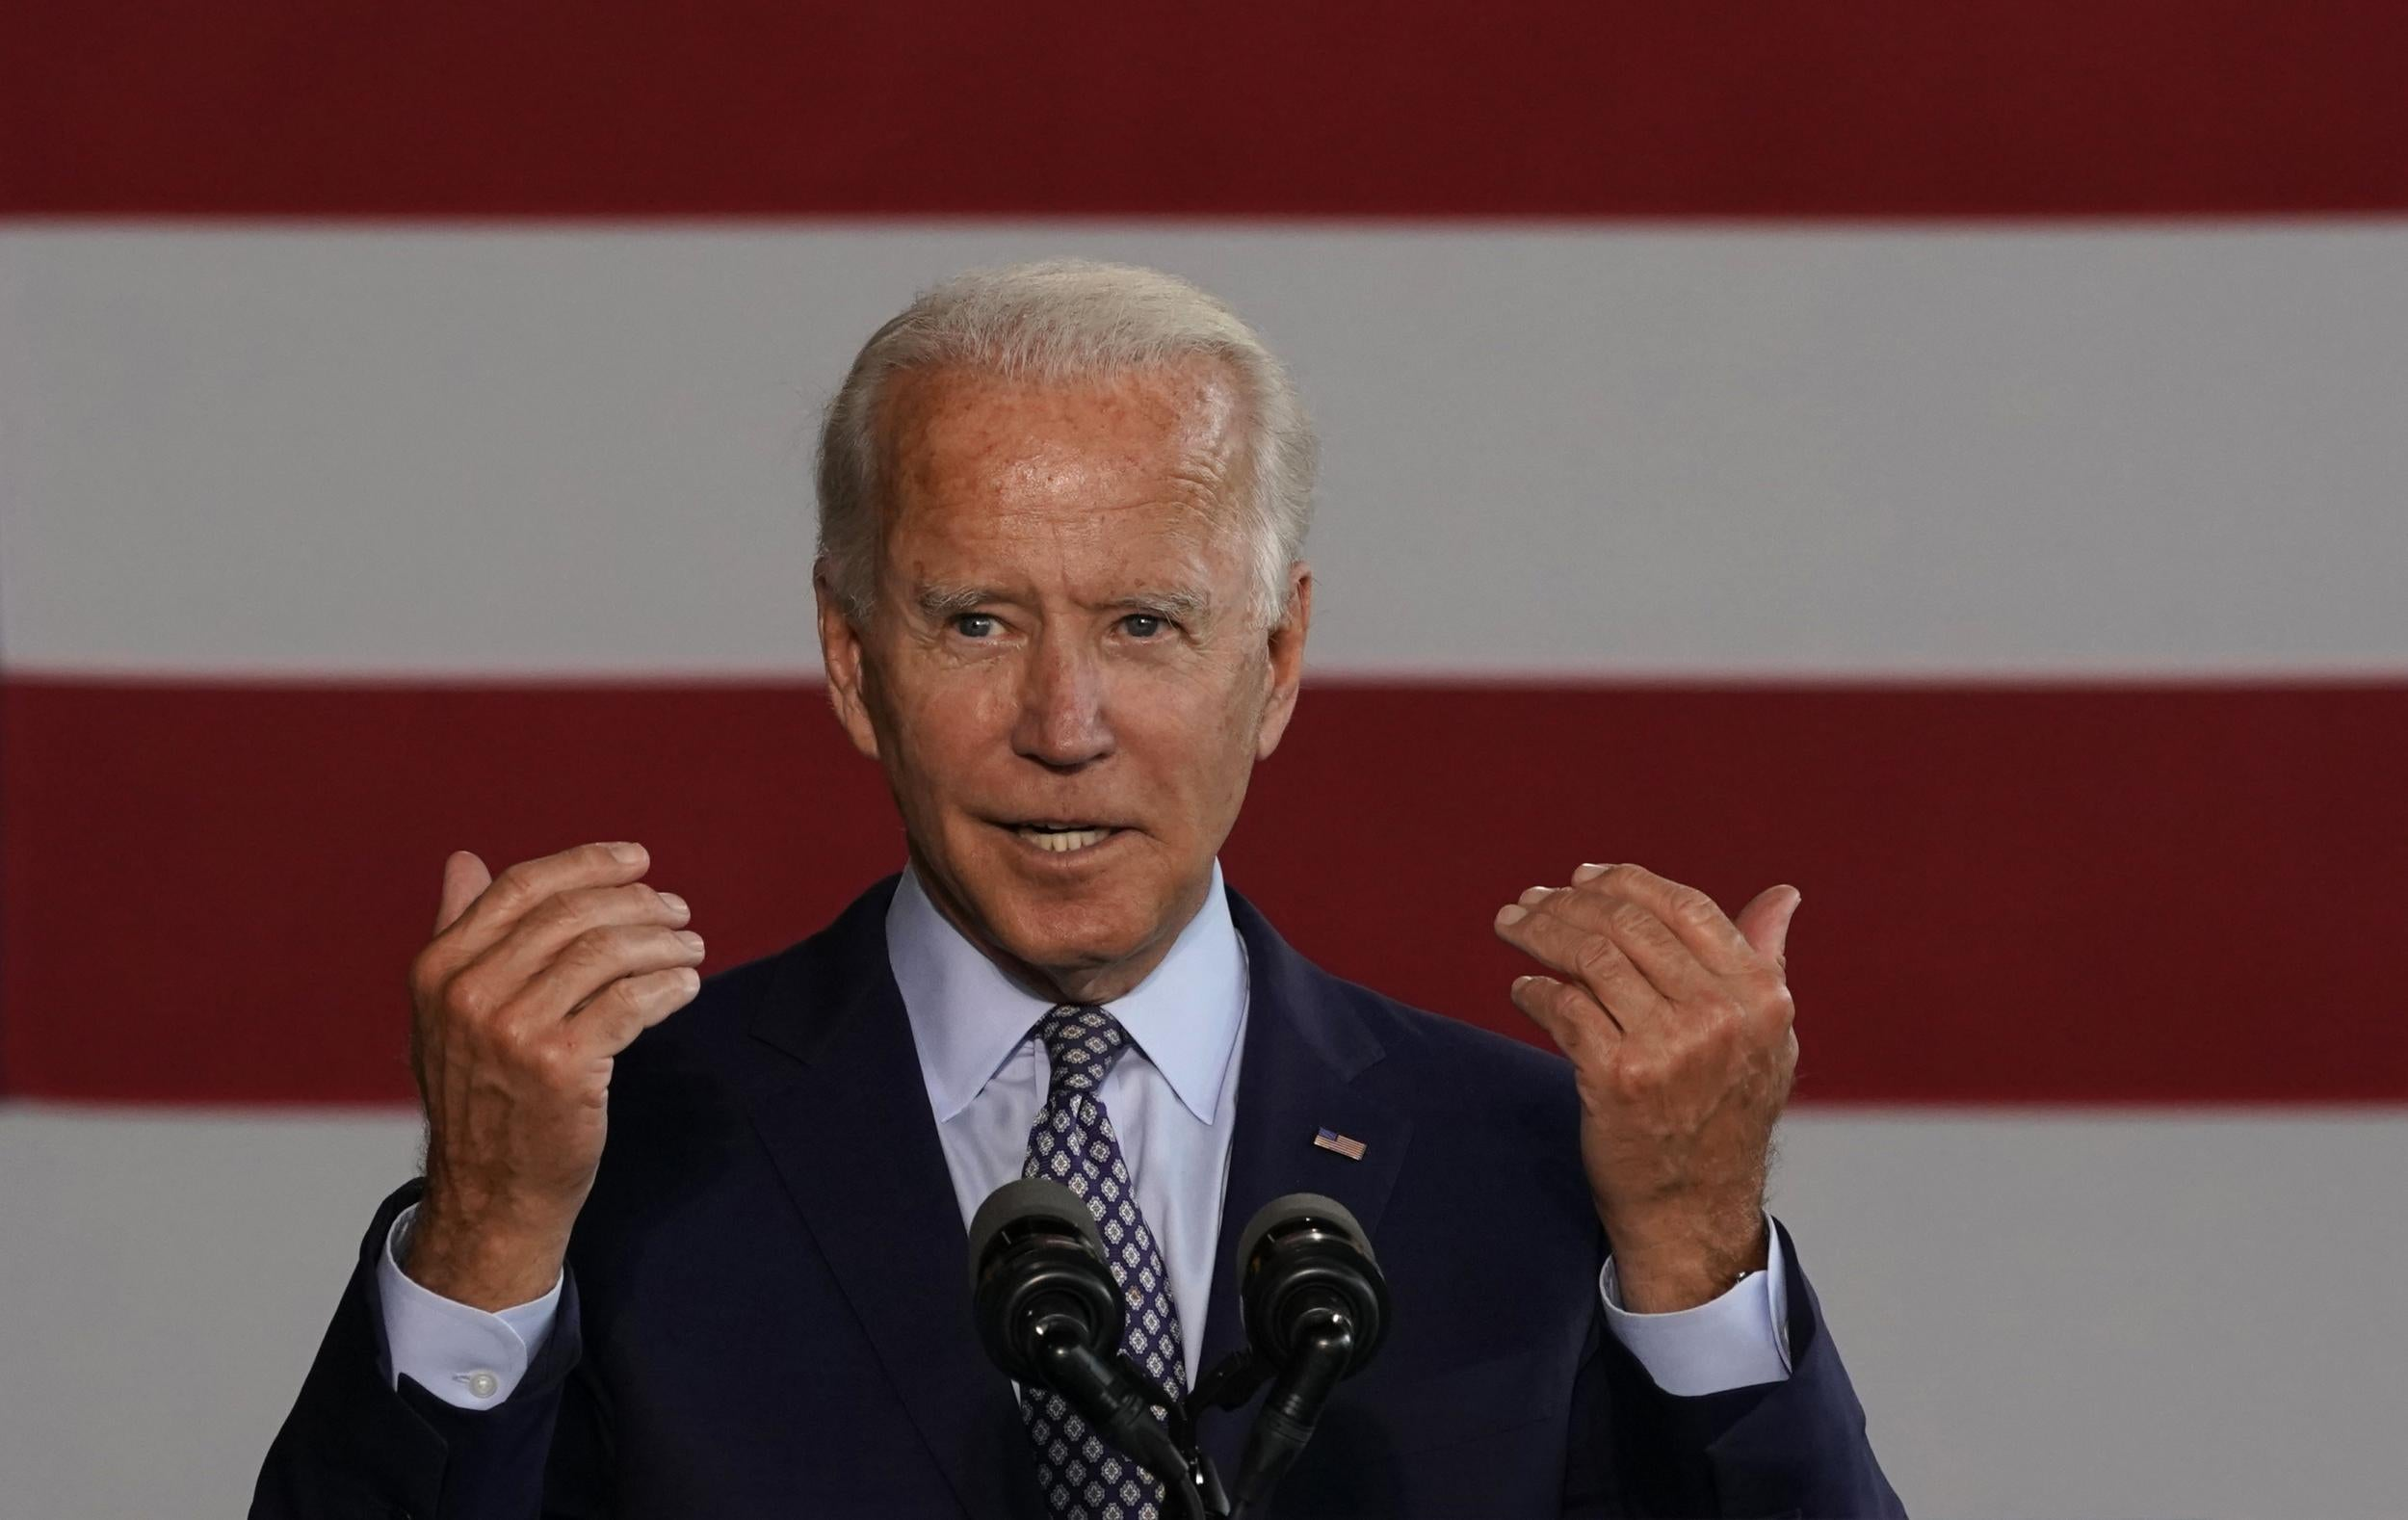 Biden plans for $2tn investment in clean energy over four years